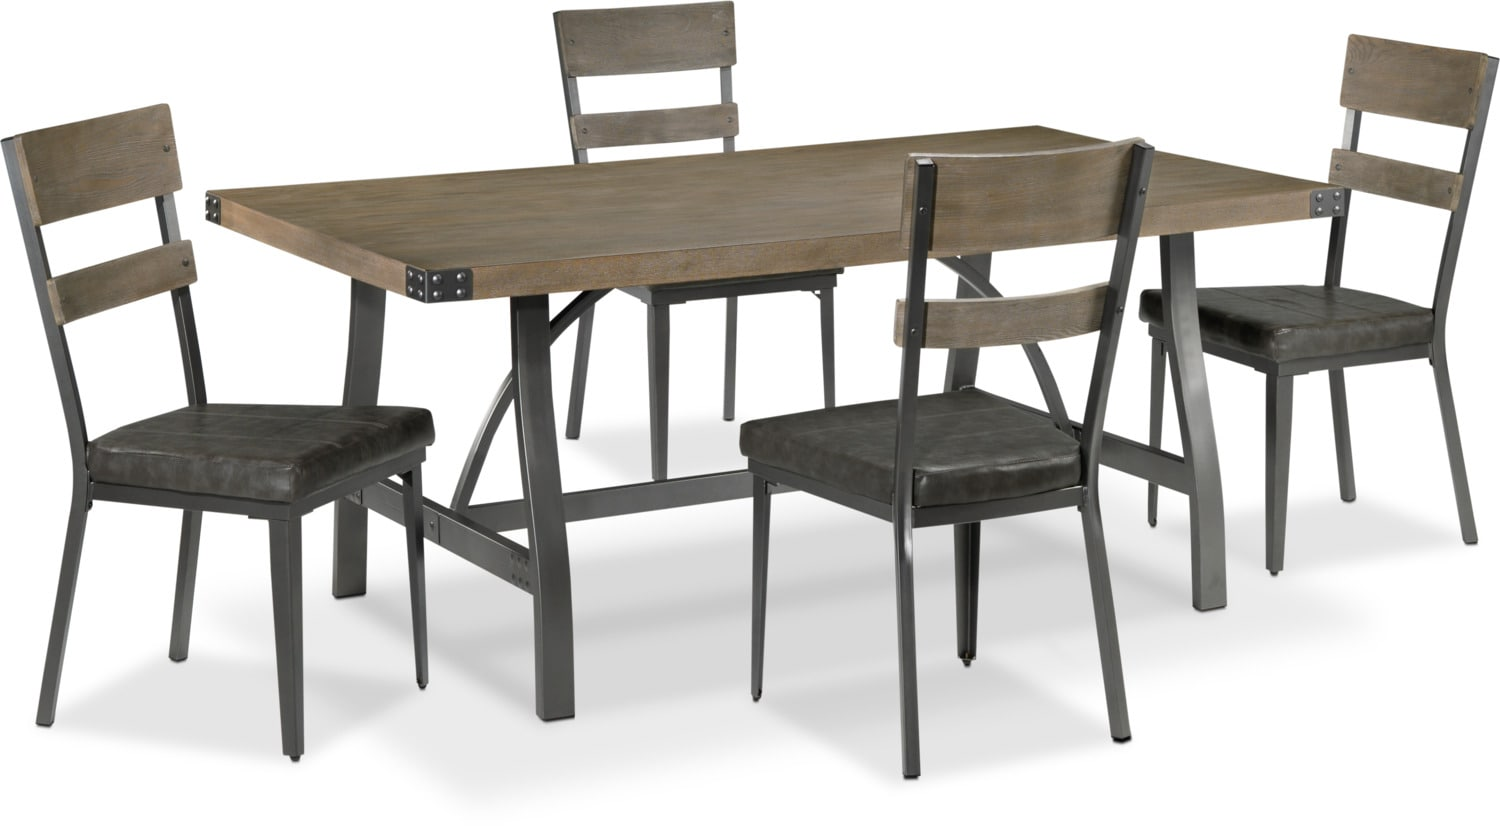 Danica 5-Piece Dinette Set - Rustic Pine and Grey